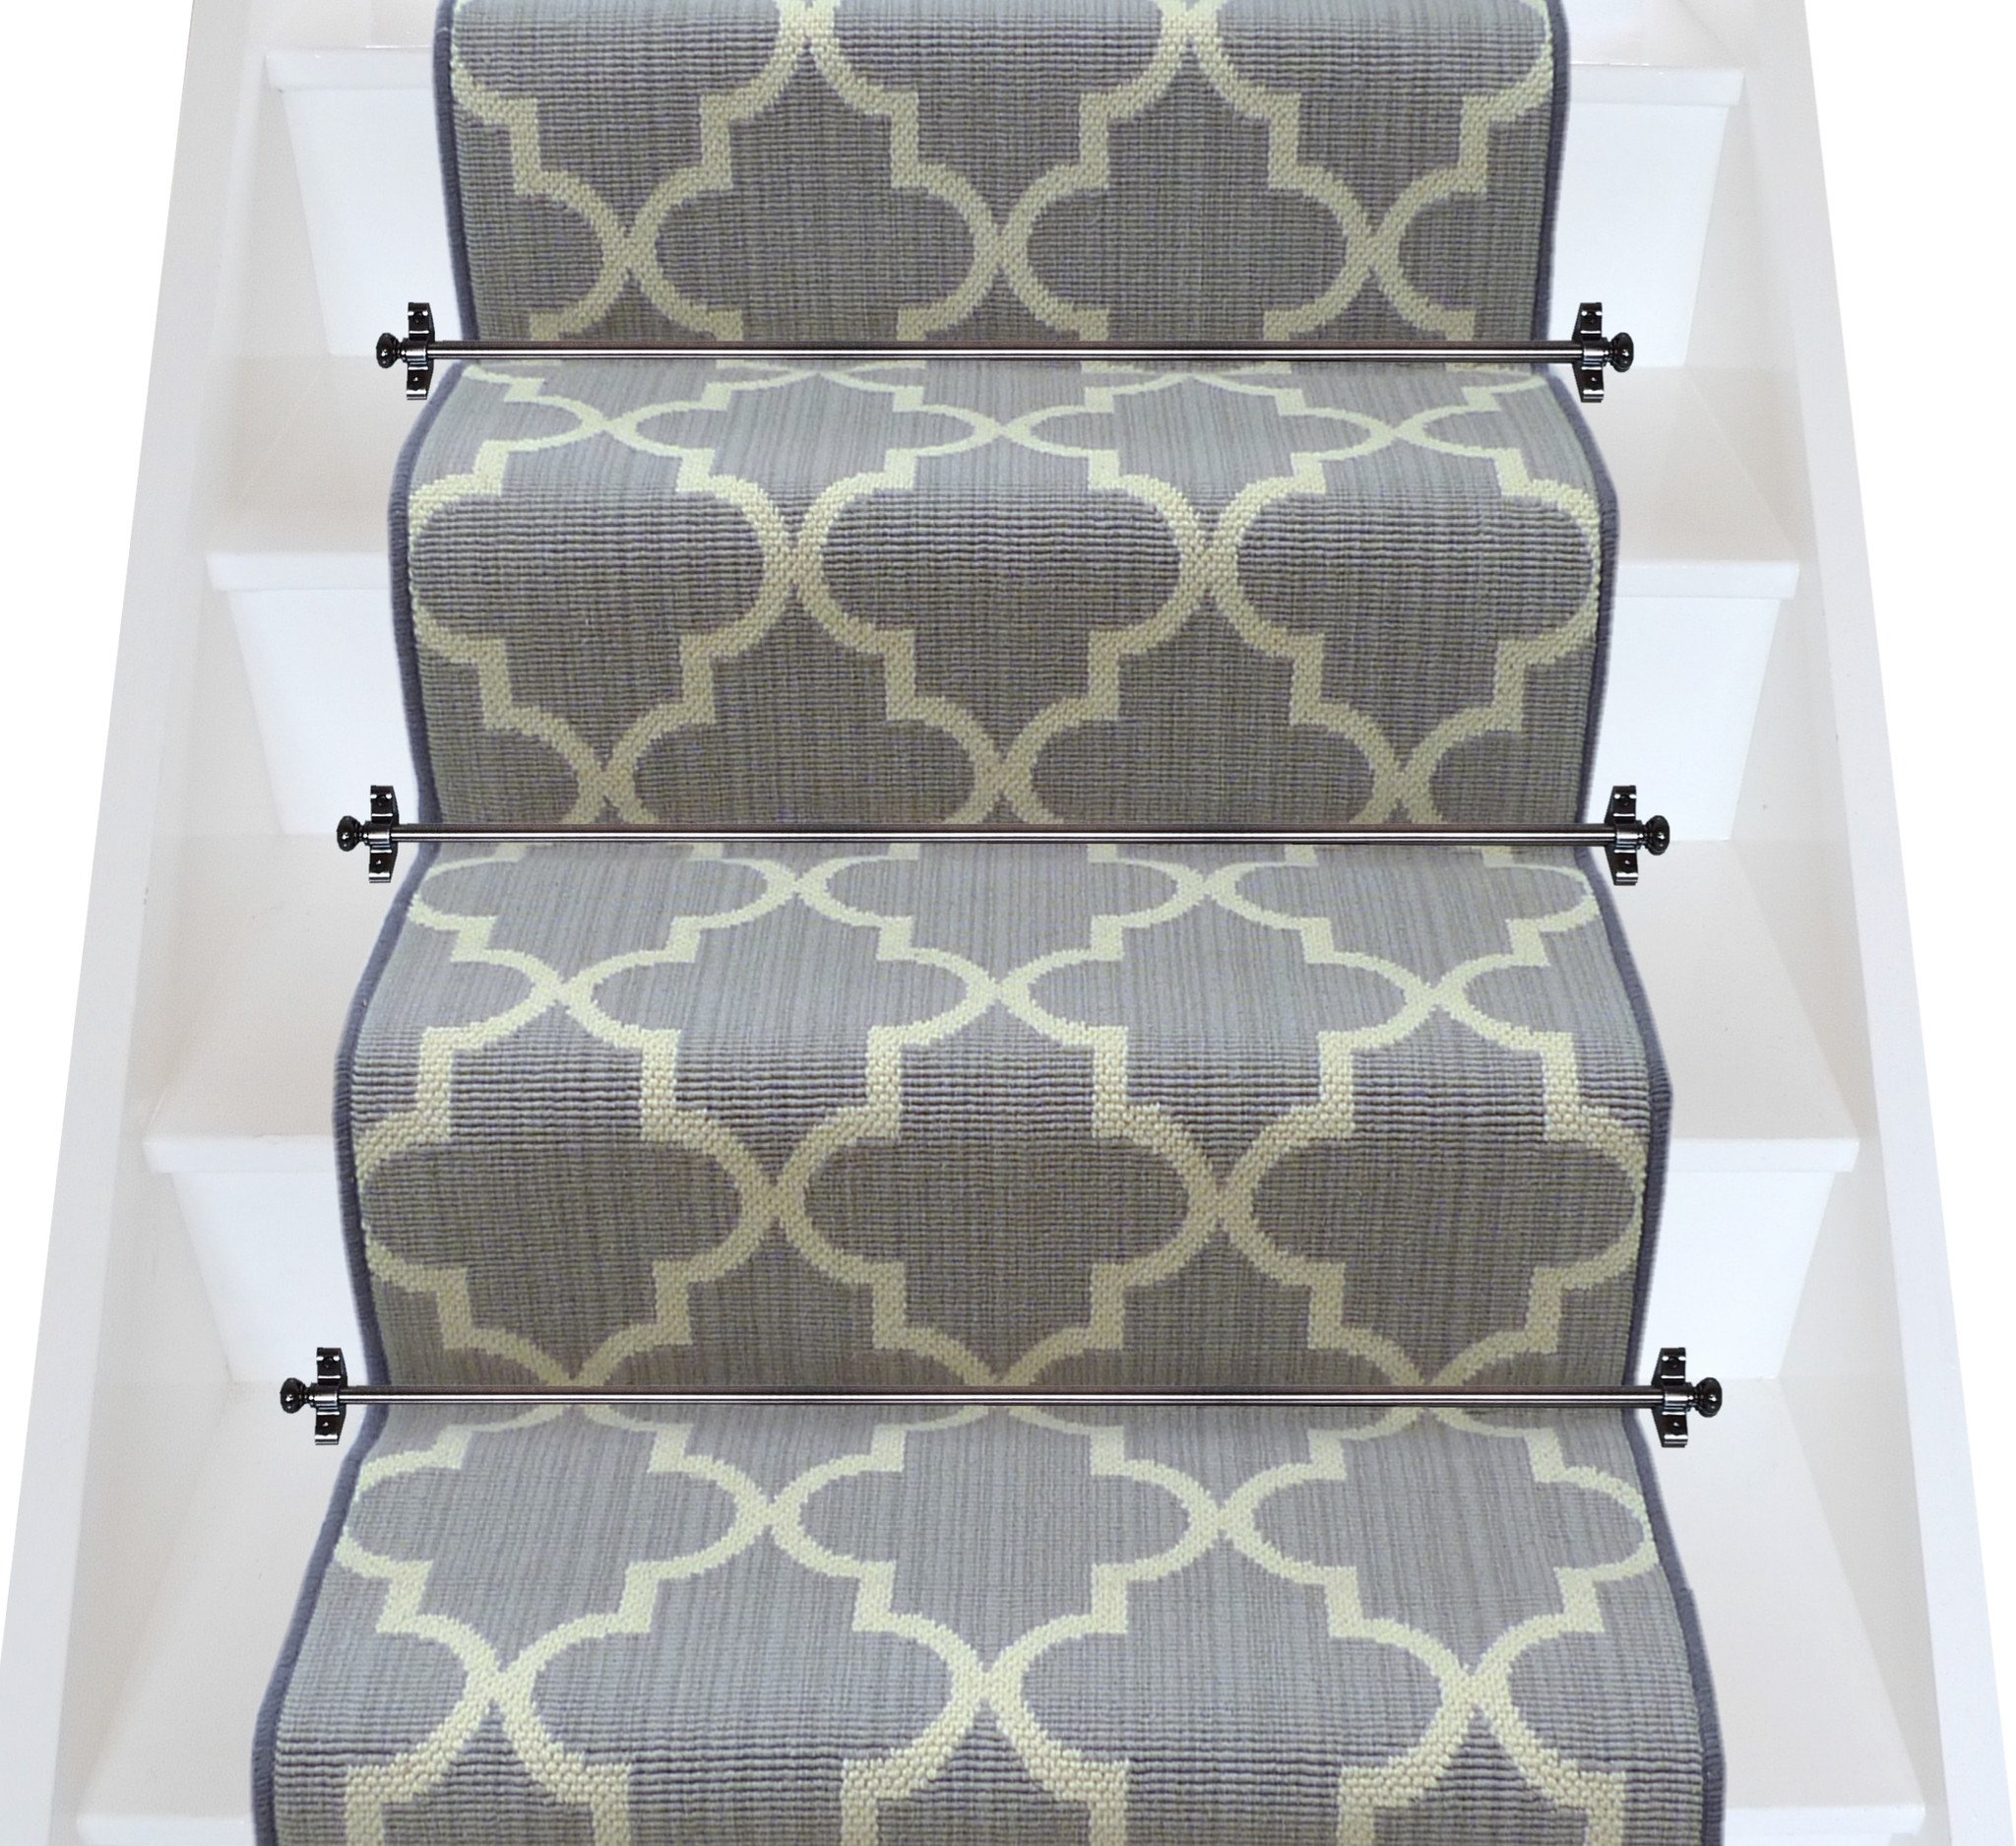 stair carpets axminster carpets royal borough trellis windsor steel mid grey (per m²) SETUJIN